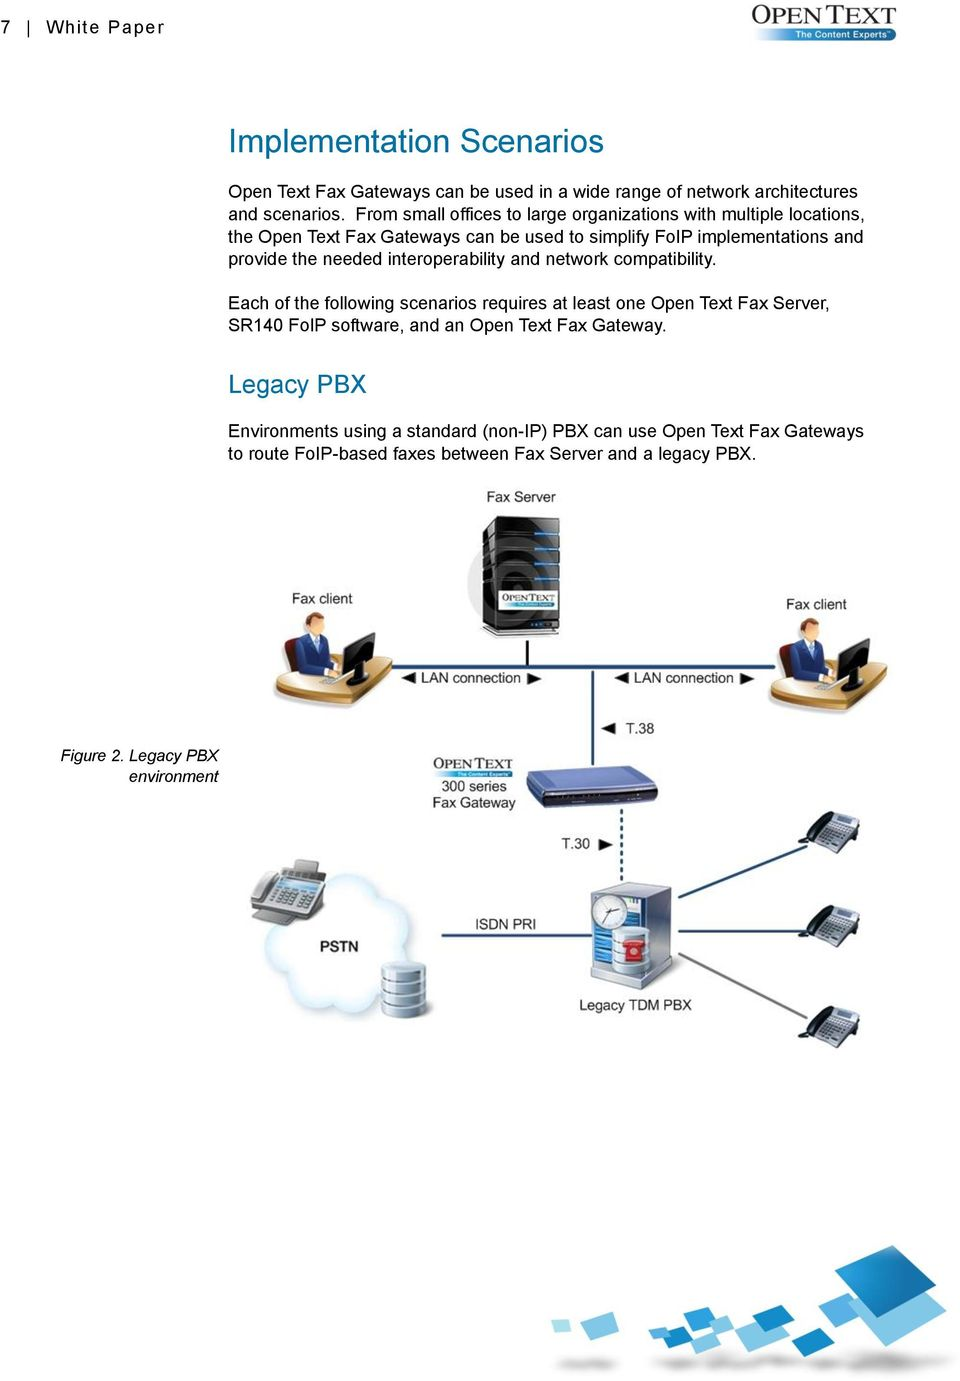 Open Text Fax Gateway Specifications And Implementation Scenarios Pdf As Well Voice Over Ip Work Diagram On Network With Needed Interoperability Compatibility